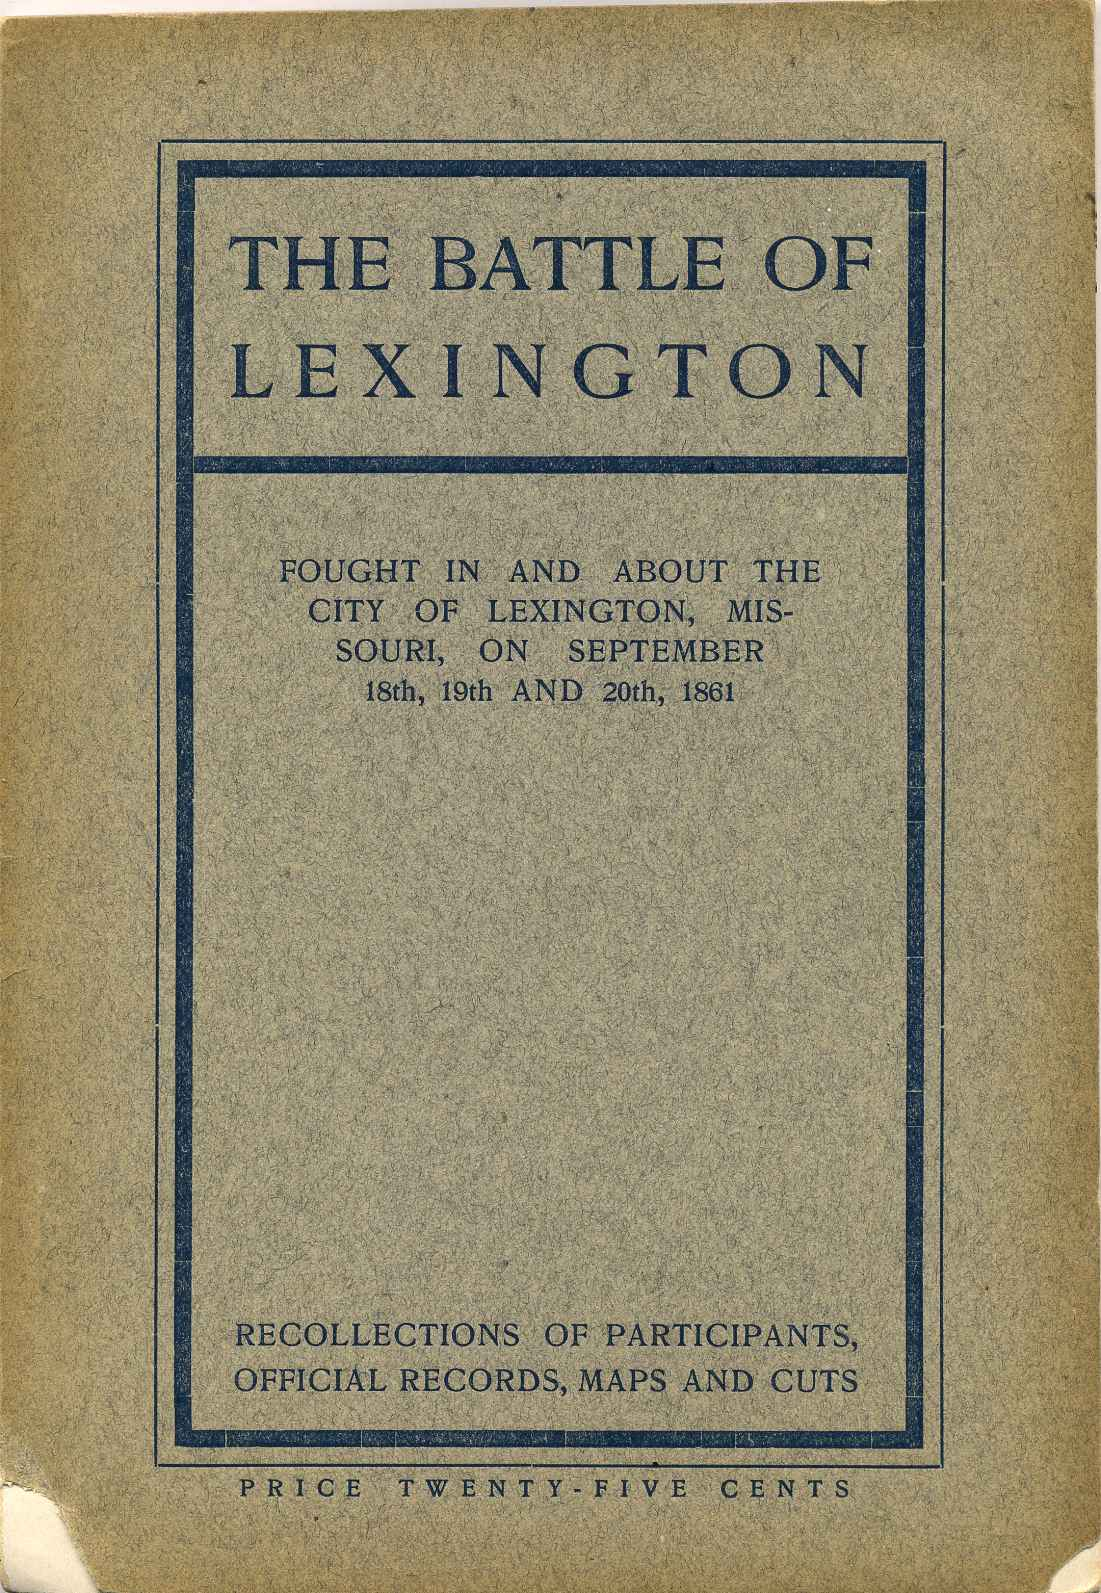 THE BATTLE OF LEXINGTON Fought in and around the City of Lexington,  Missouri, on September 18th, 19th and 20th, by forces Under Command of  Colonel